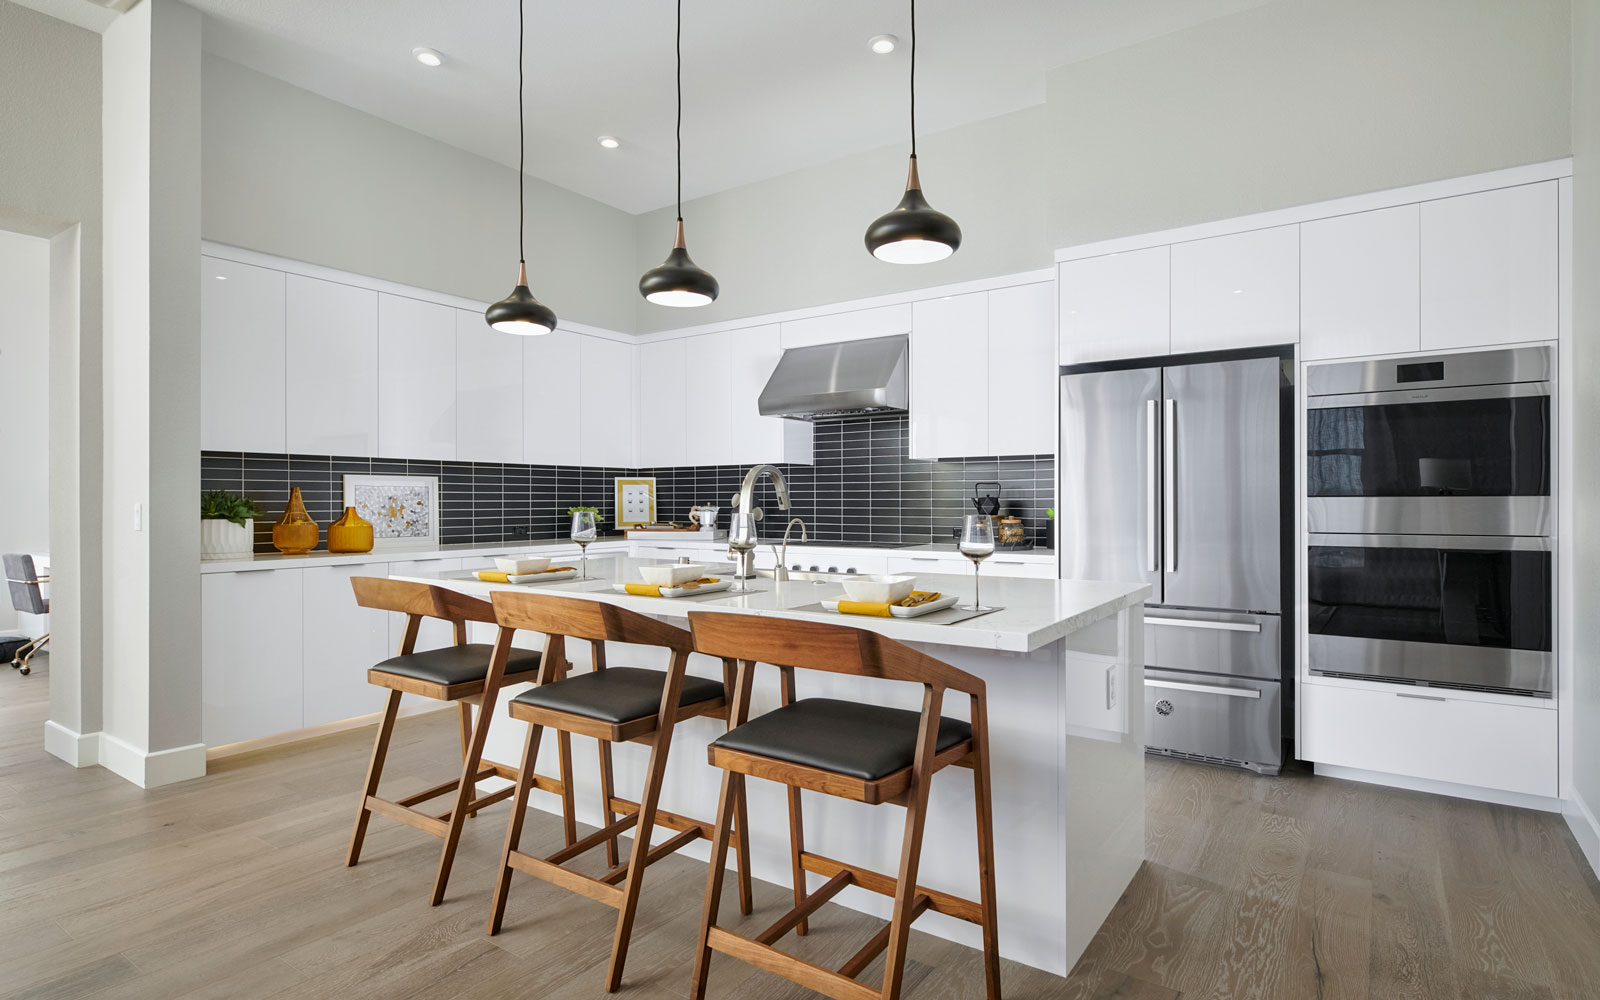 Kitchen   Residence 2   Hyde Park at Boulevard in Dublin, CA   Brookfield Residential